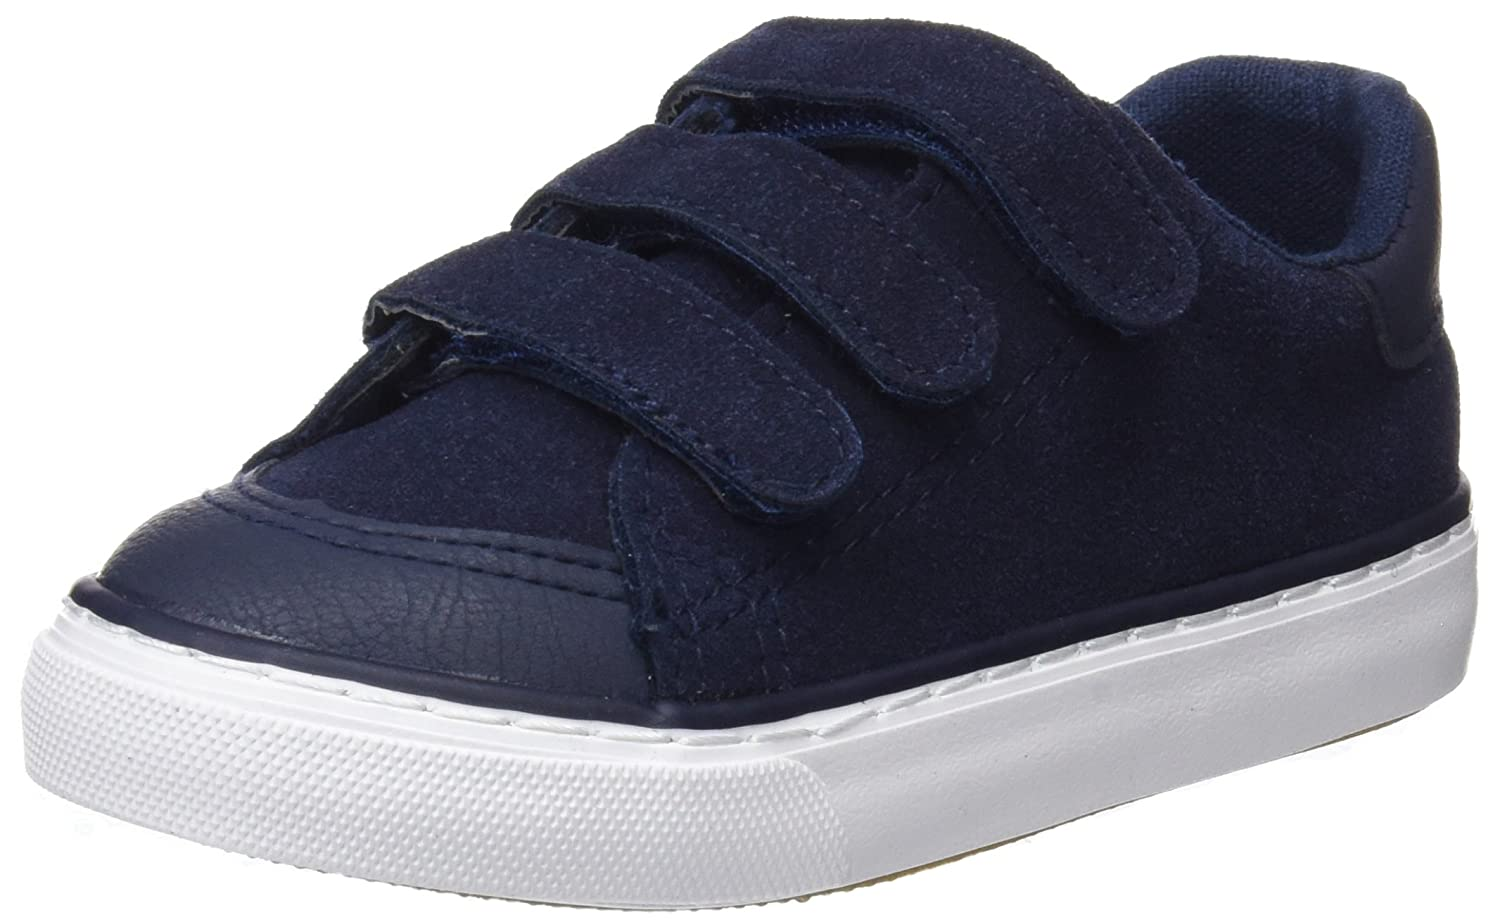 Zippy Sneakers, Scape per Sport Outdoor Bambino 19-4024 Tc